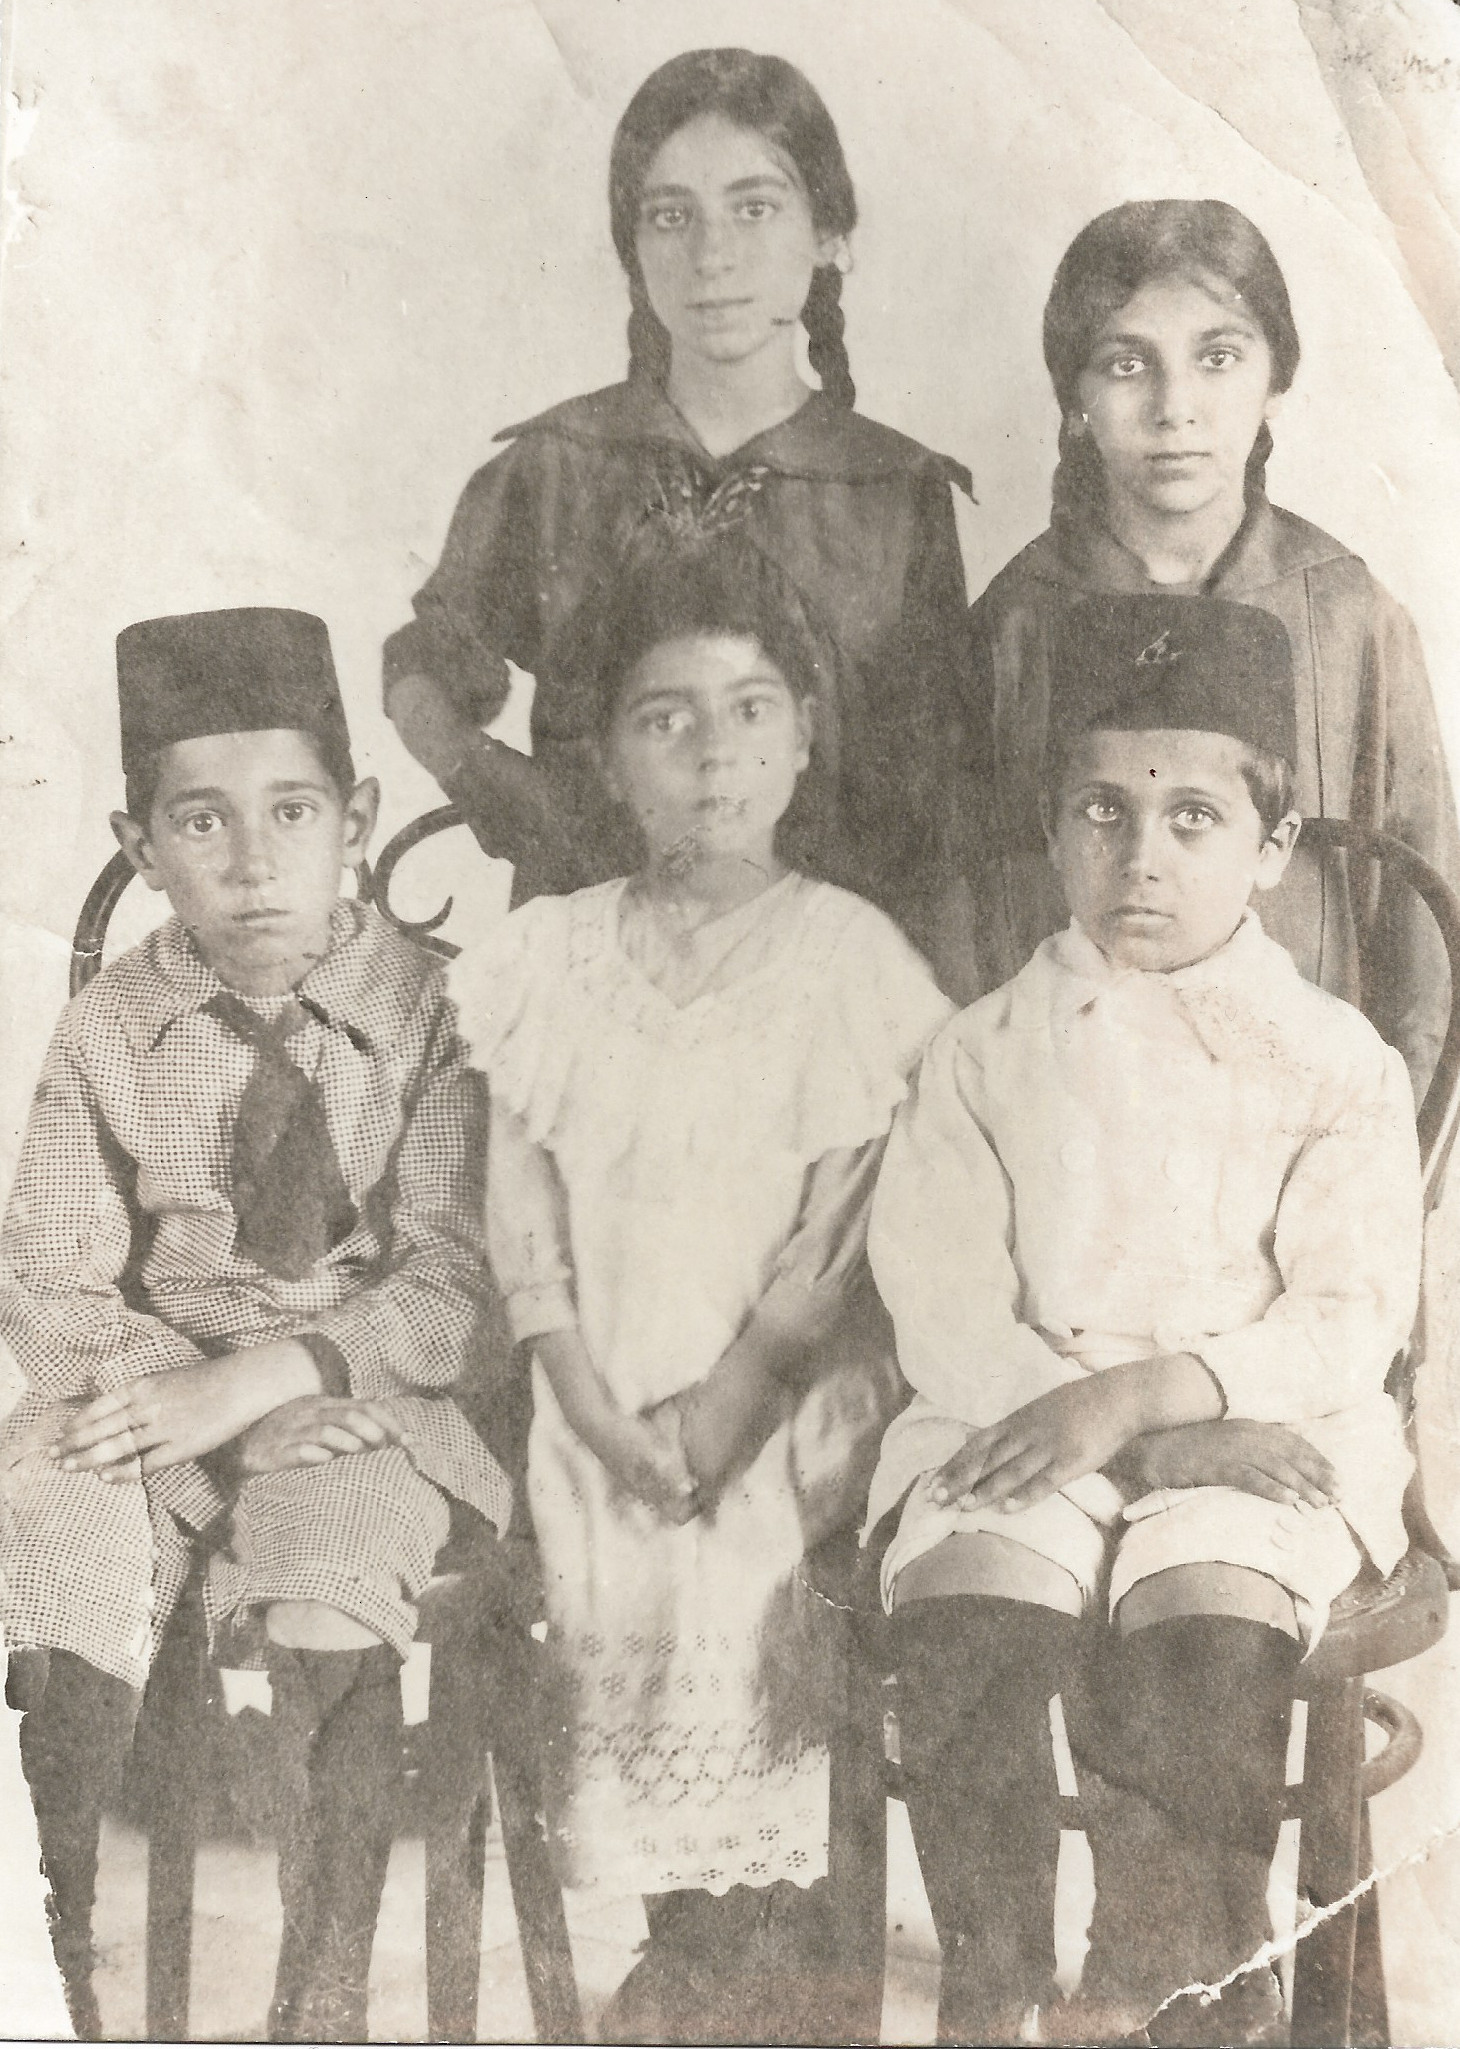 Left to Right Back Row: Maryam Jalal Shahid, Mehranguise Rabbani Front Row: Ruhi Mohsen Afnan, Zahra Jalal Shahid, Hossein Rabbani